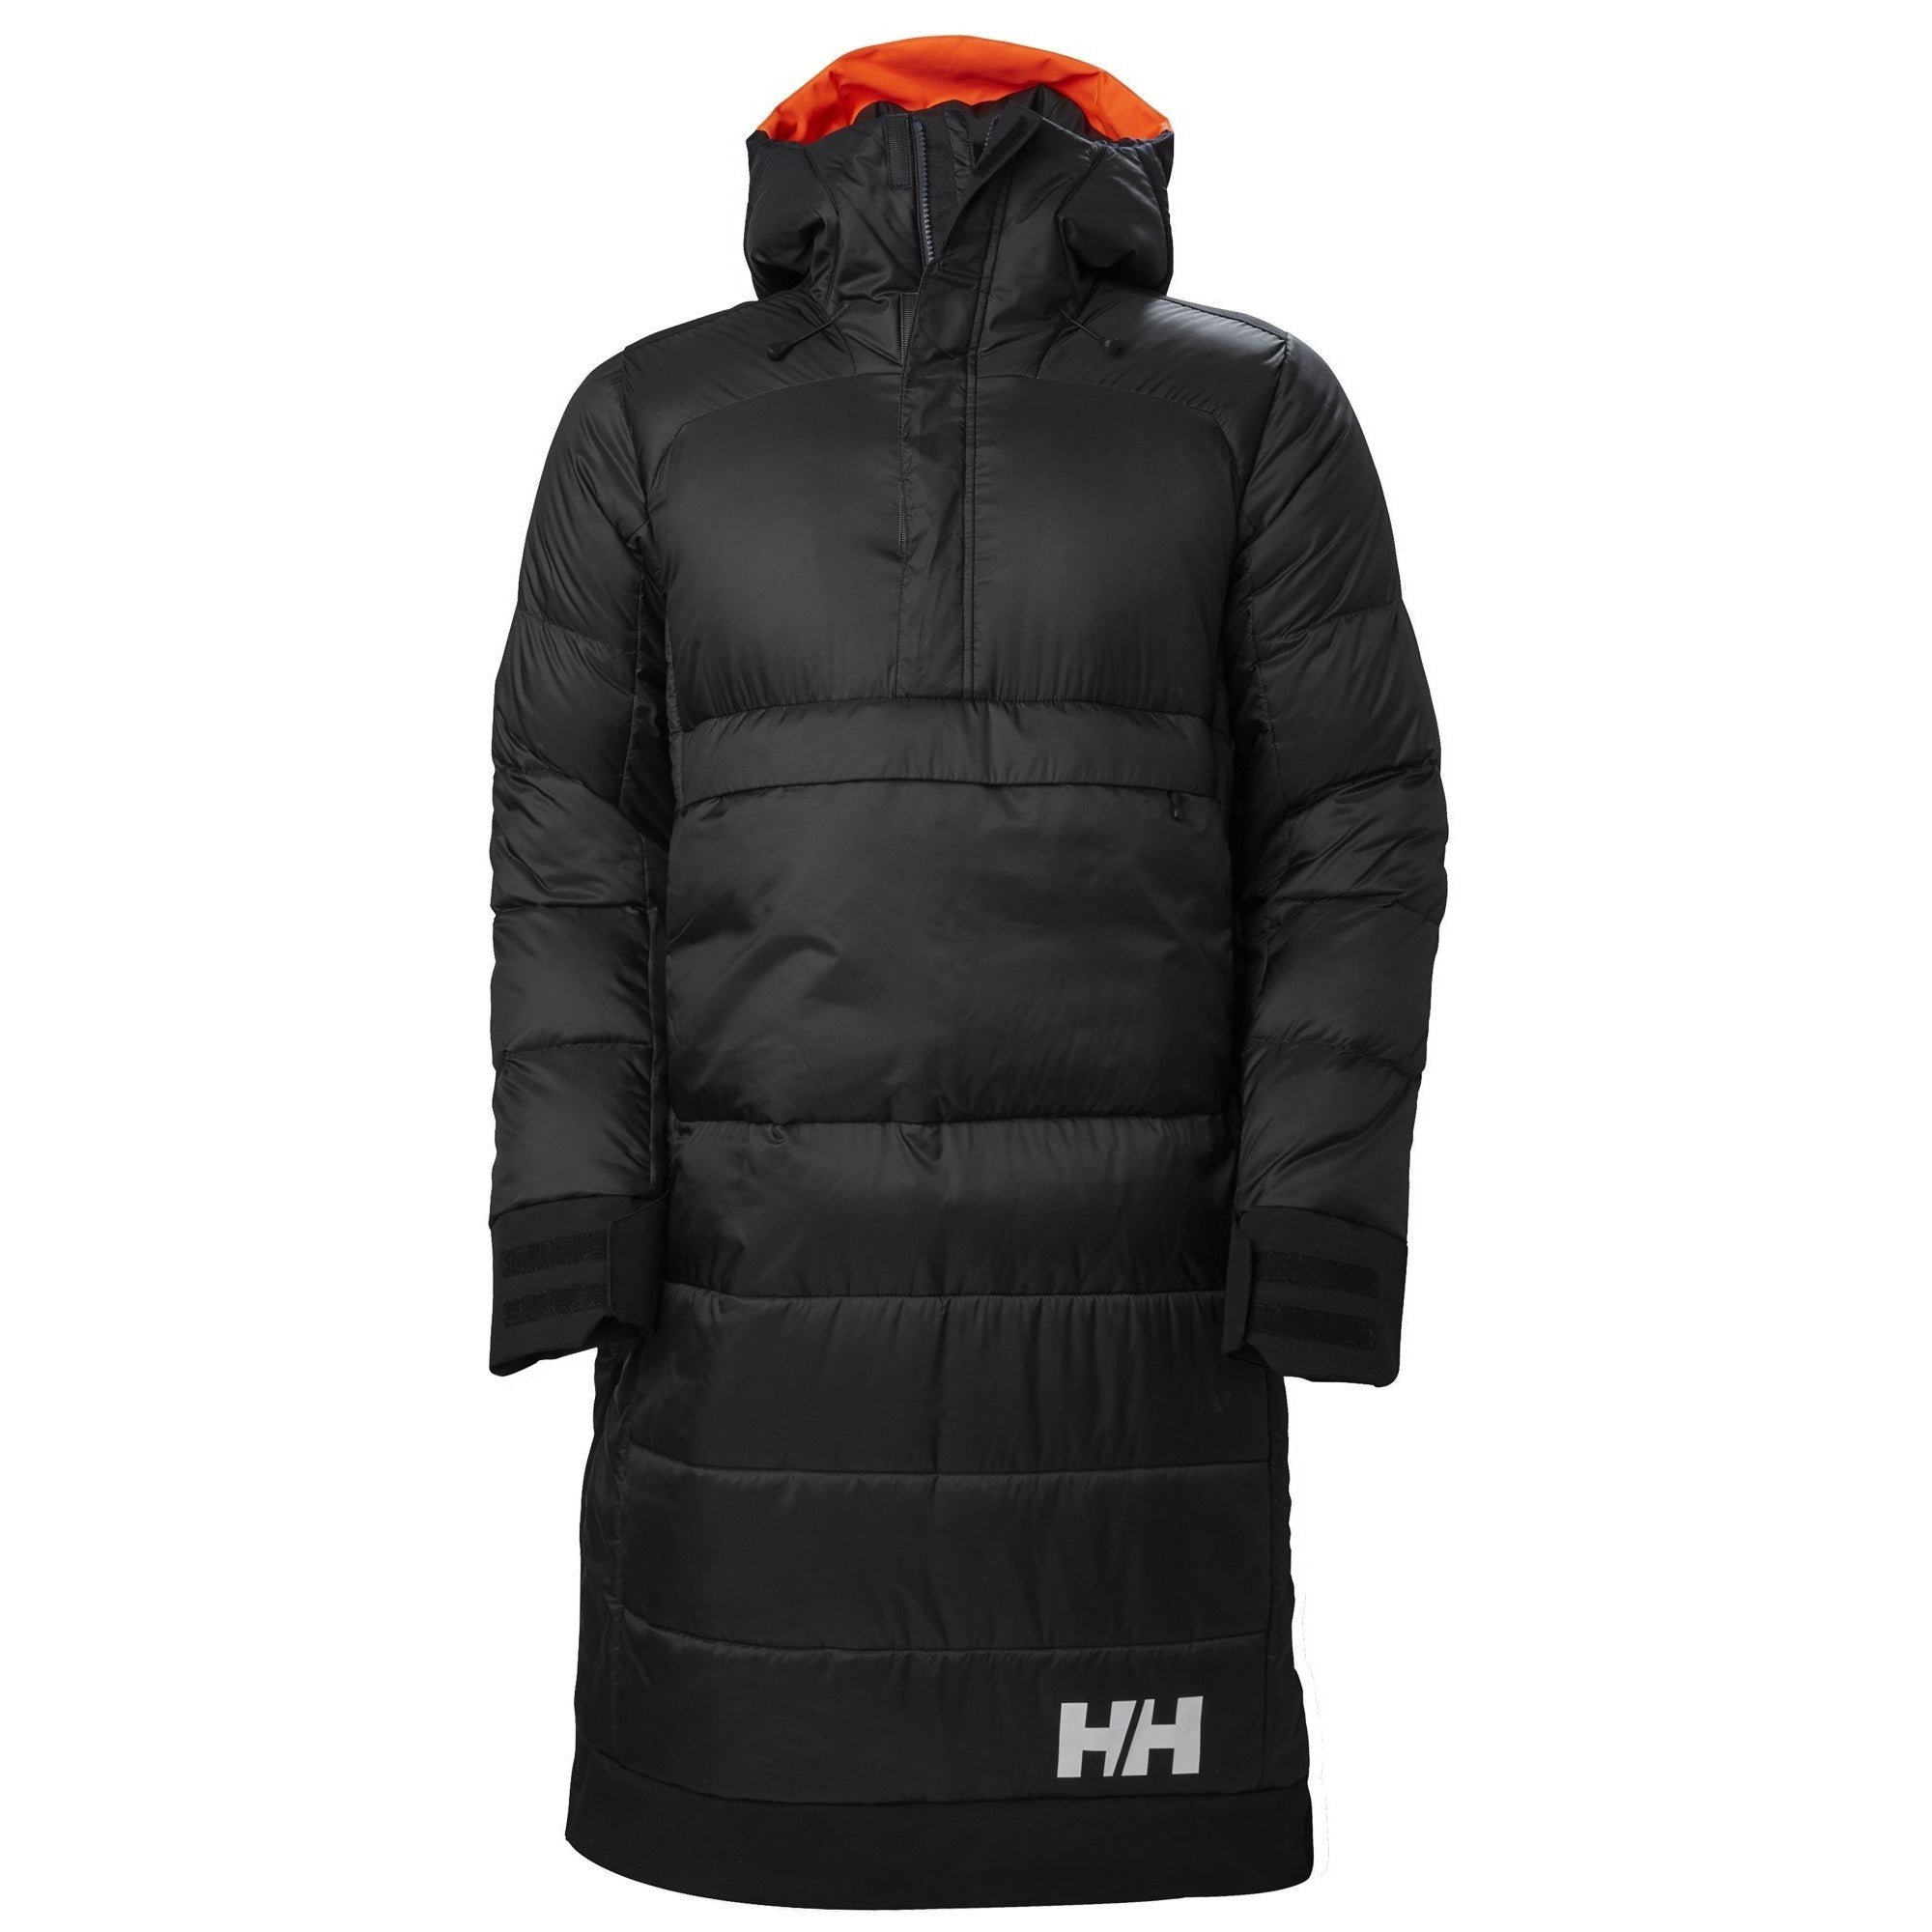 Helly Hansen 2021 Penguin Puff Jacket